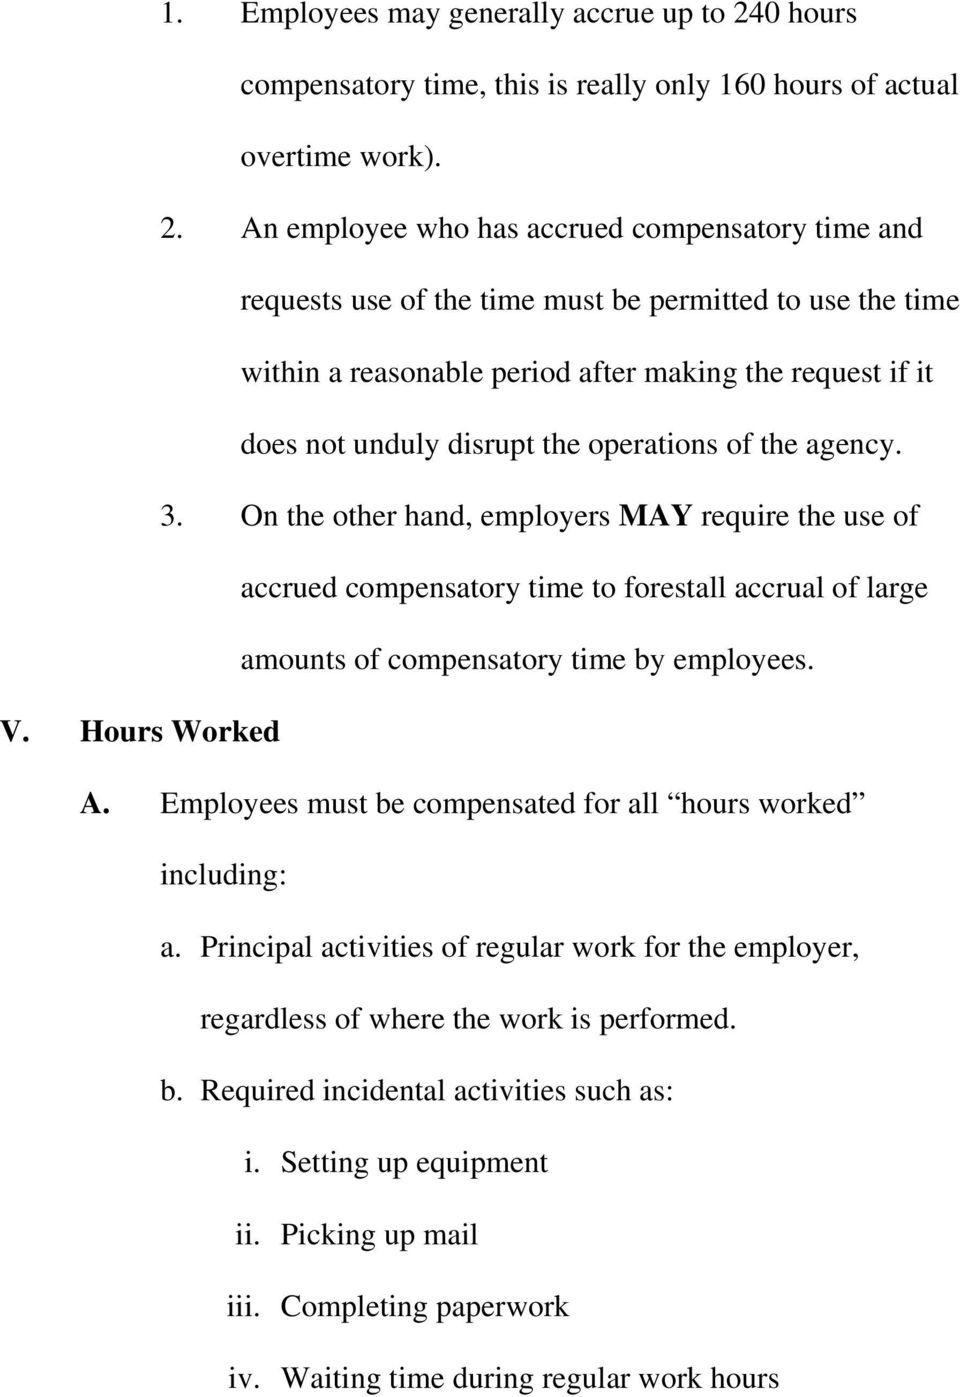 An employee who has accrued compensatory time and requests use of the time must be permitted to use the time within a reasonable period after making the request if it does not unduly disrupt the